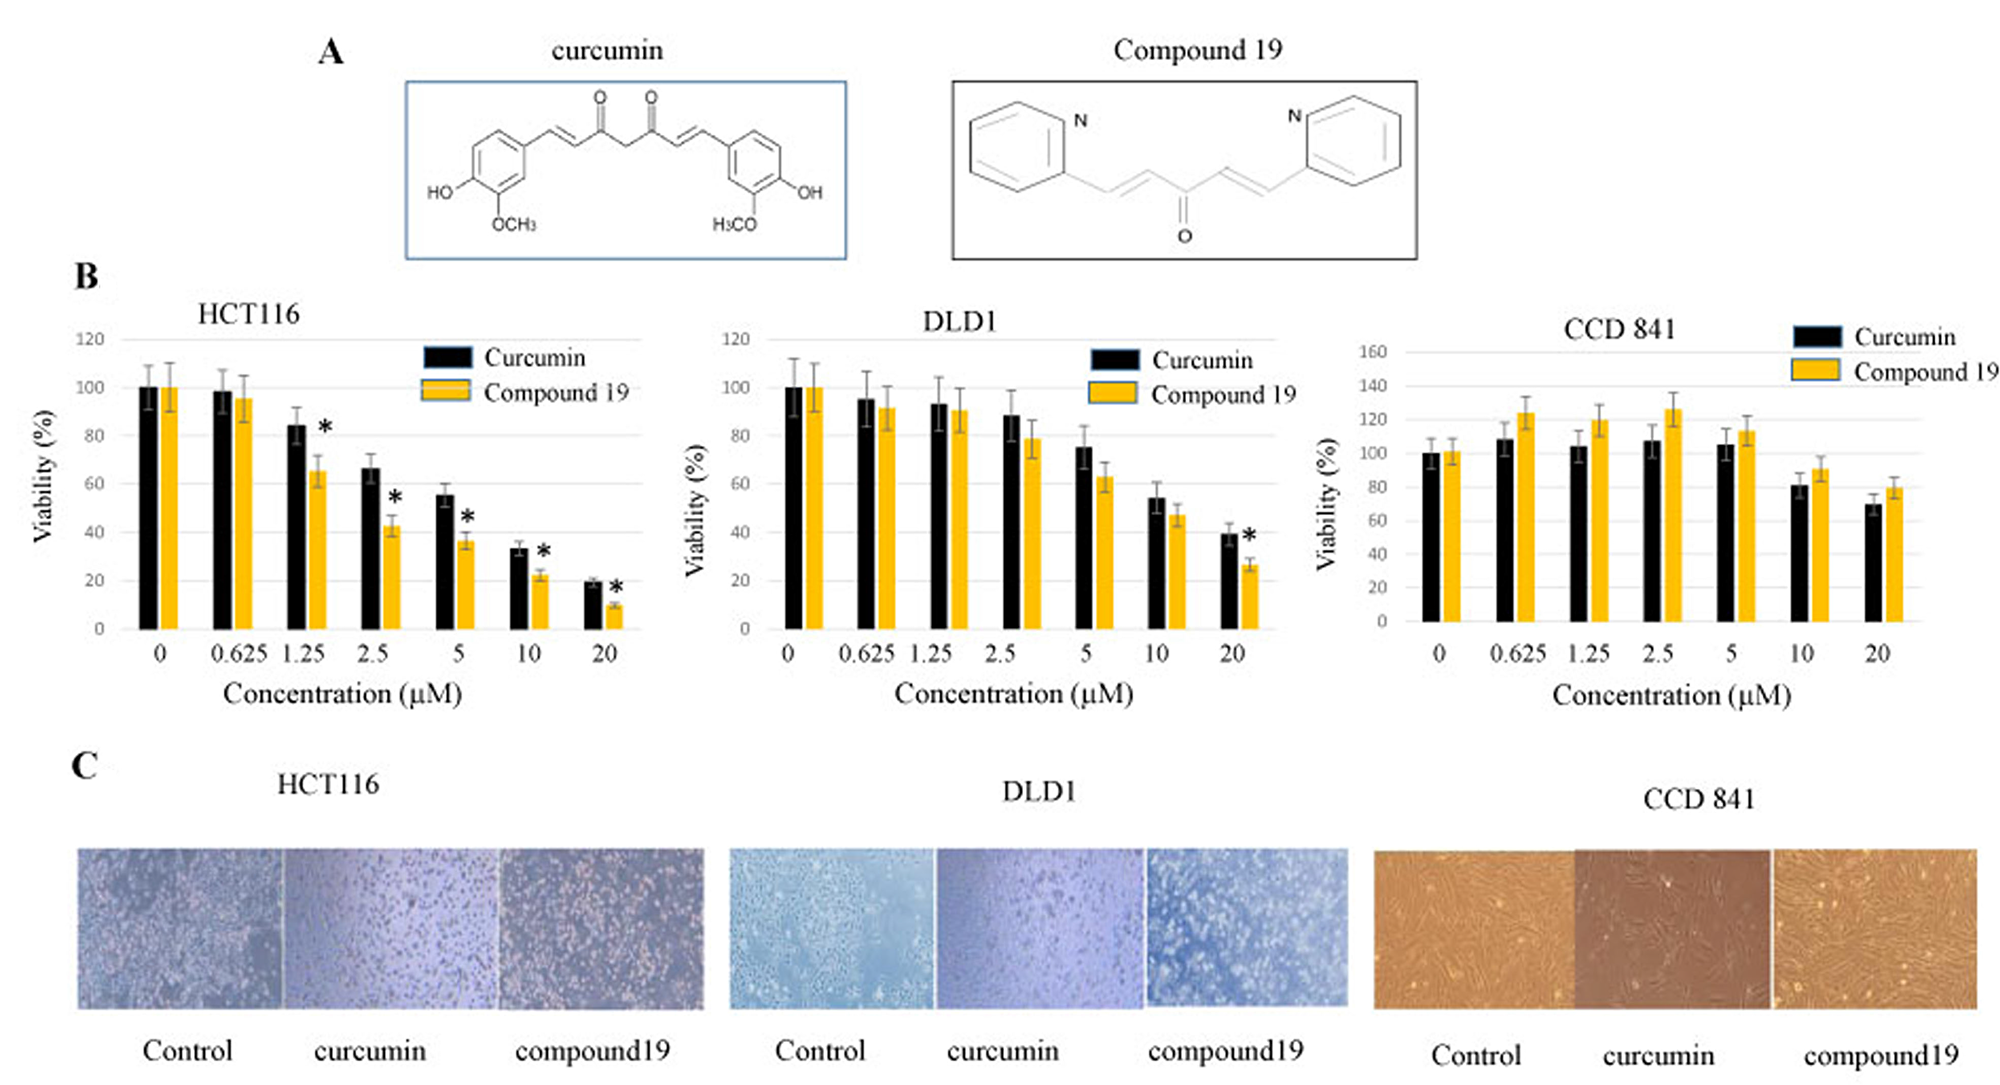 Anti-proliferative effects of curcumin and compound 19 on the human colorectal cancer cell lines HCT116 and DLD1.